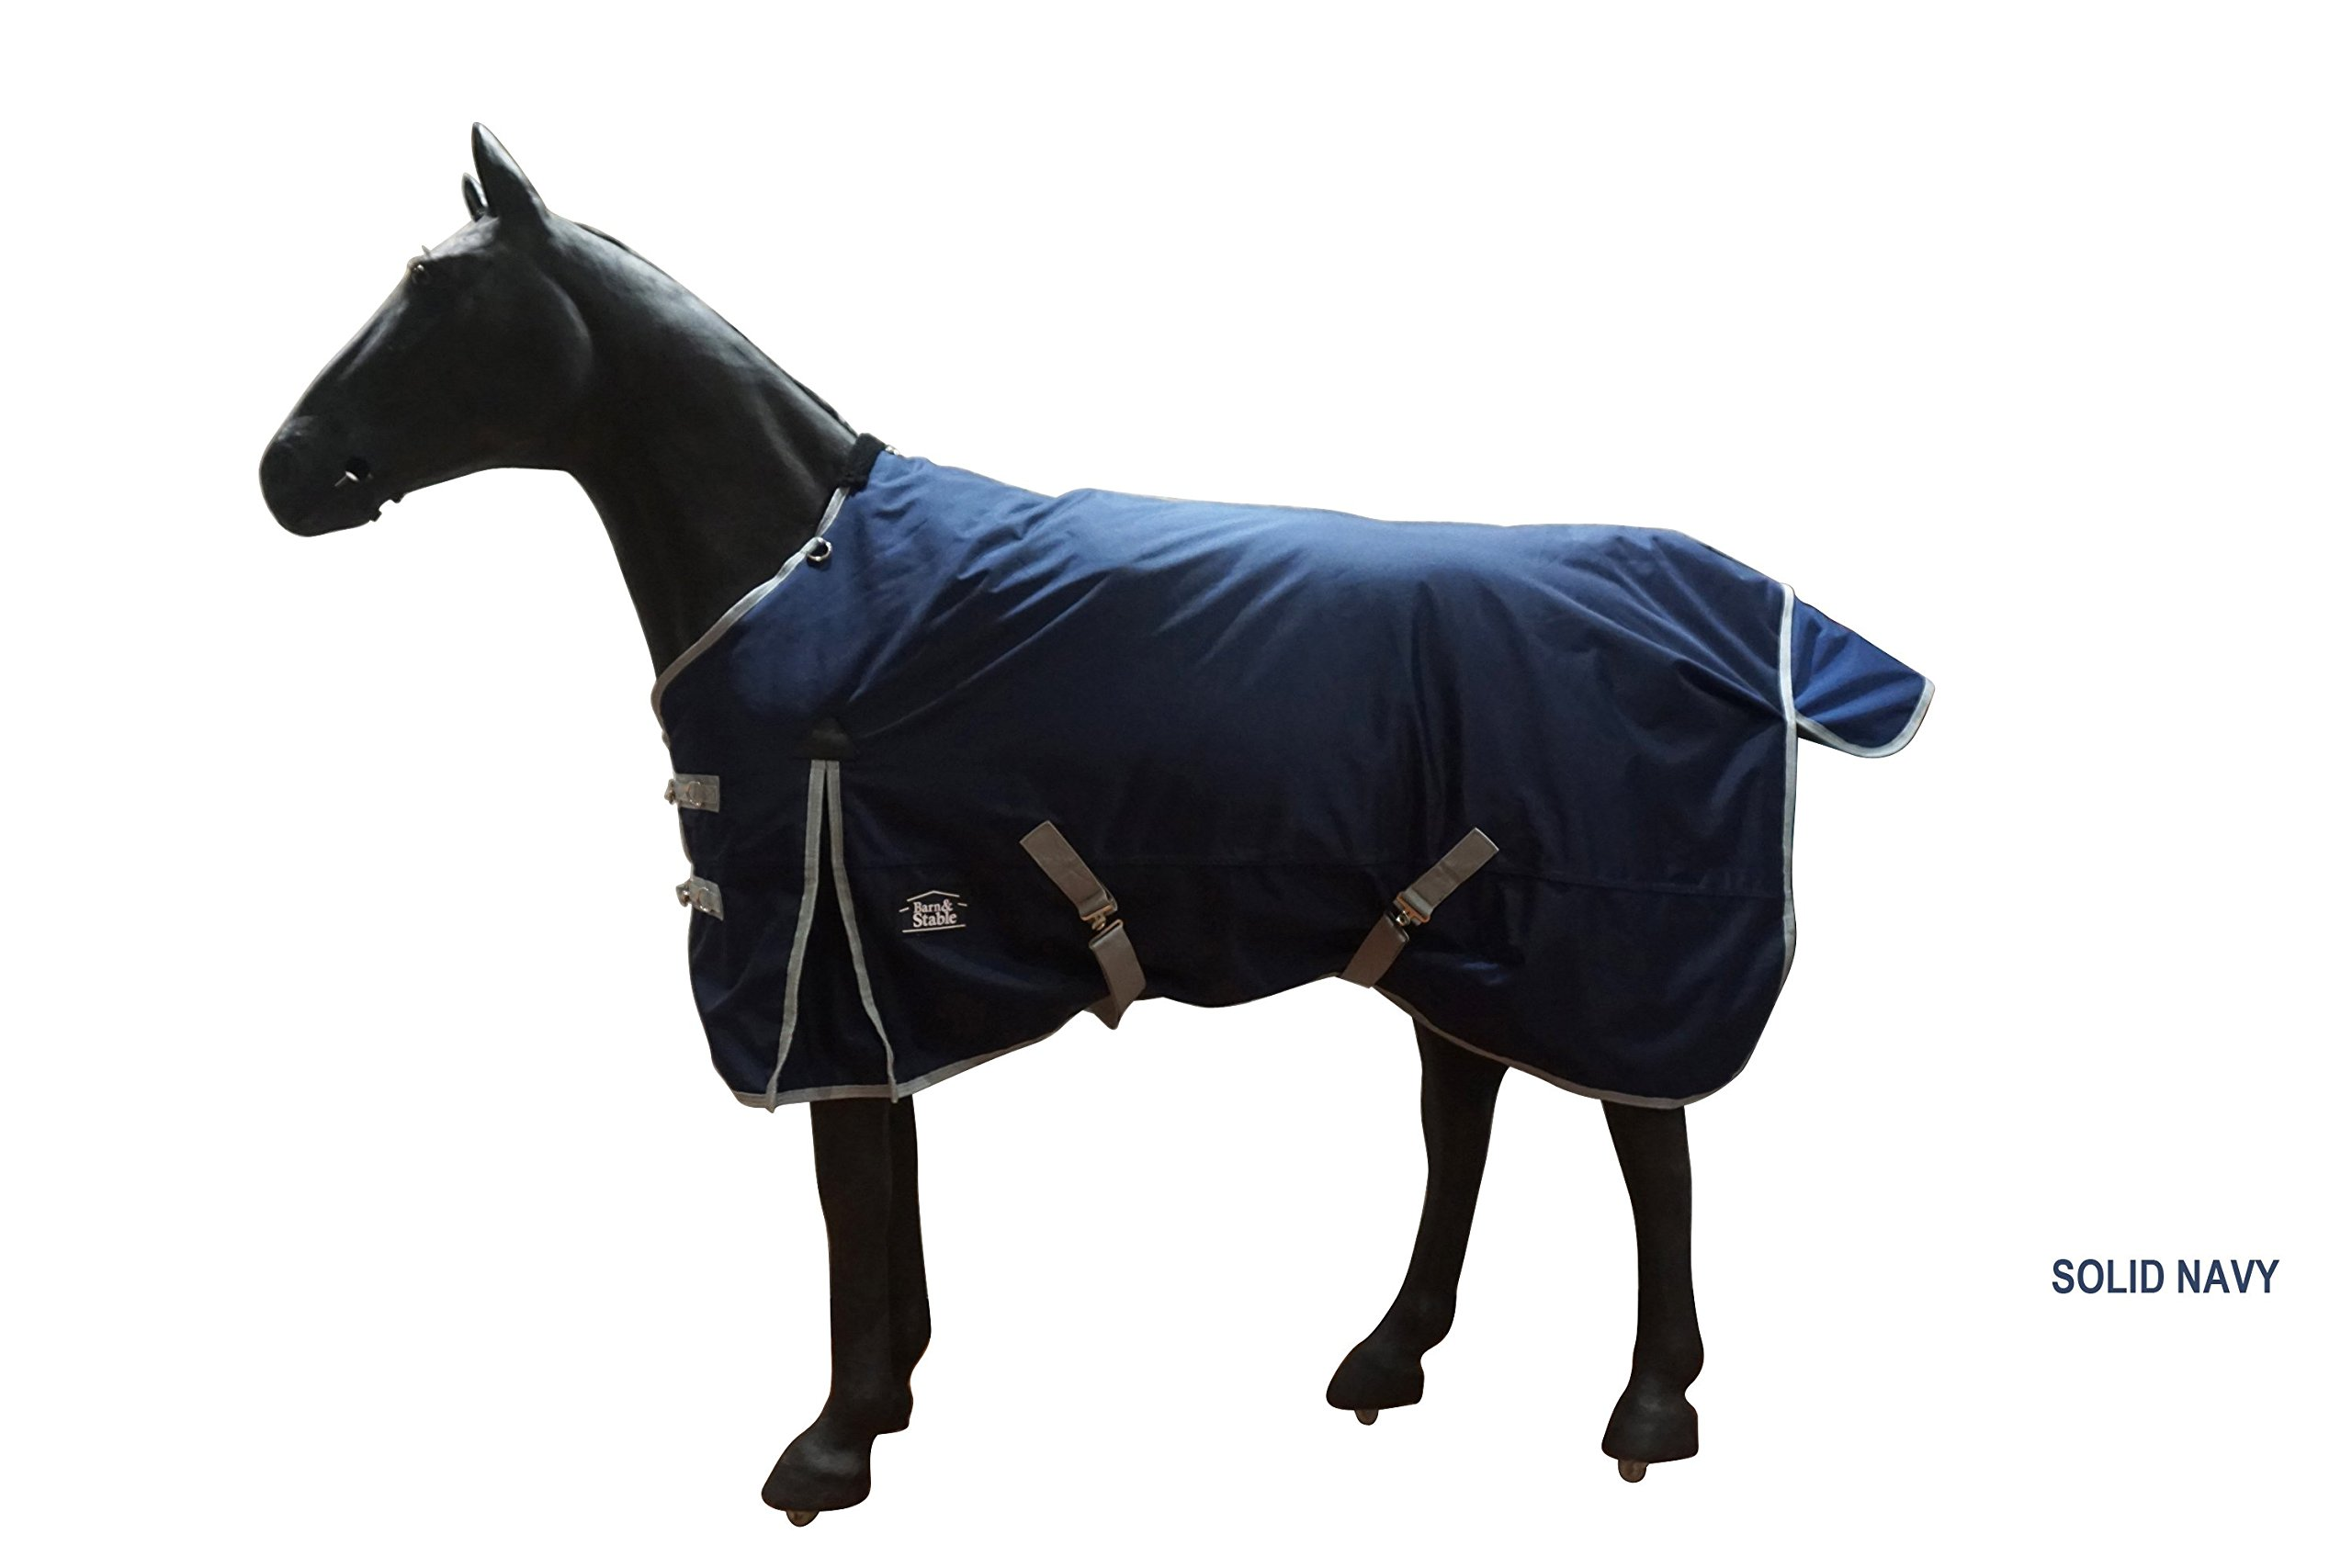 Barn & Stable Horse Blanket Turnout Blanket 1680D, 210D Lining and 200grm Fill